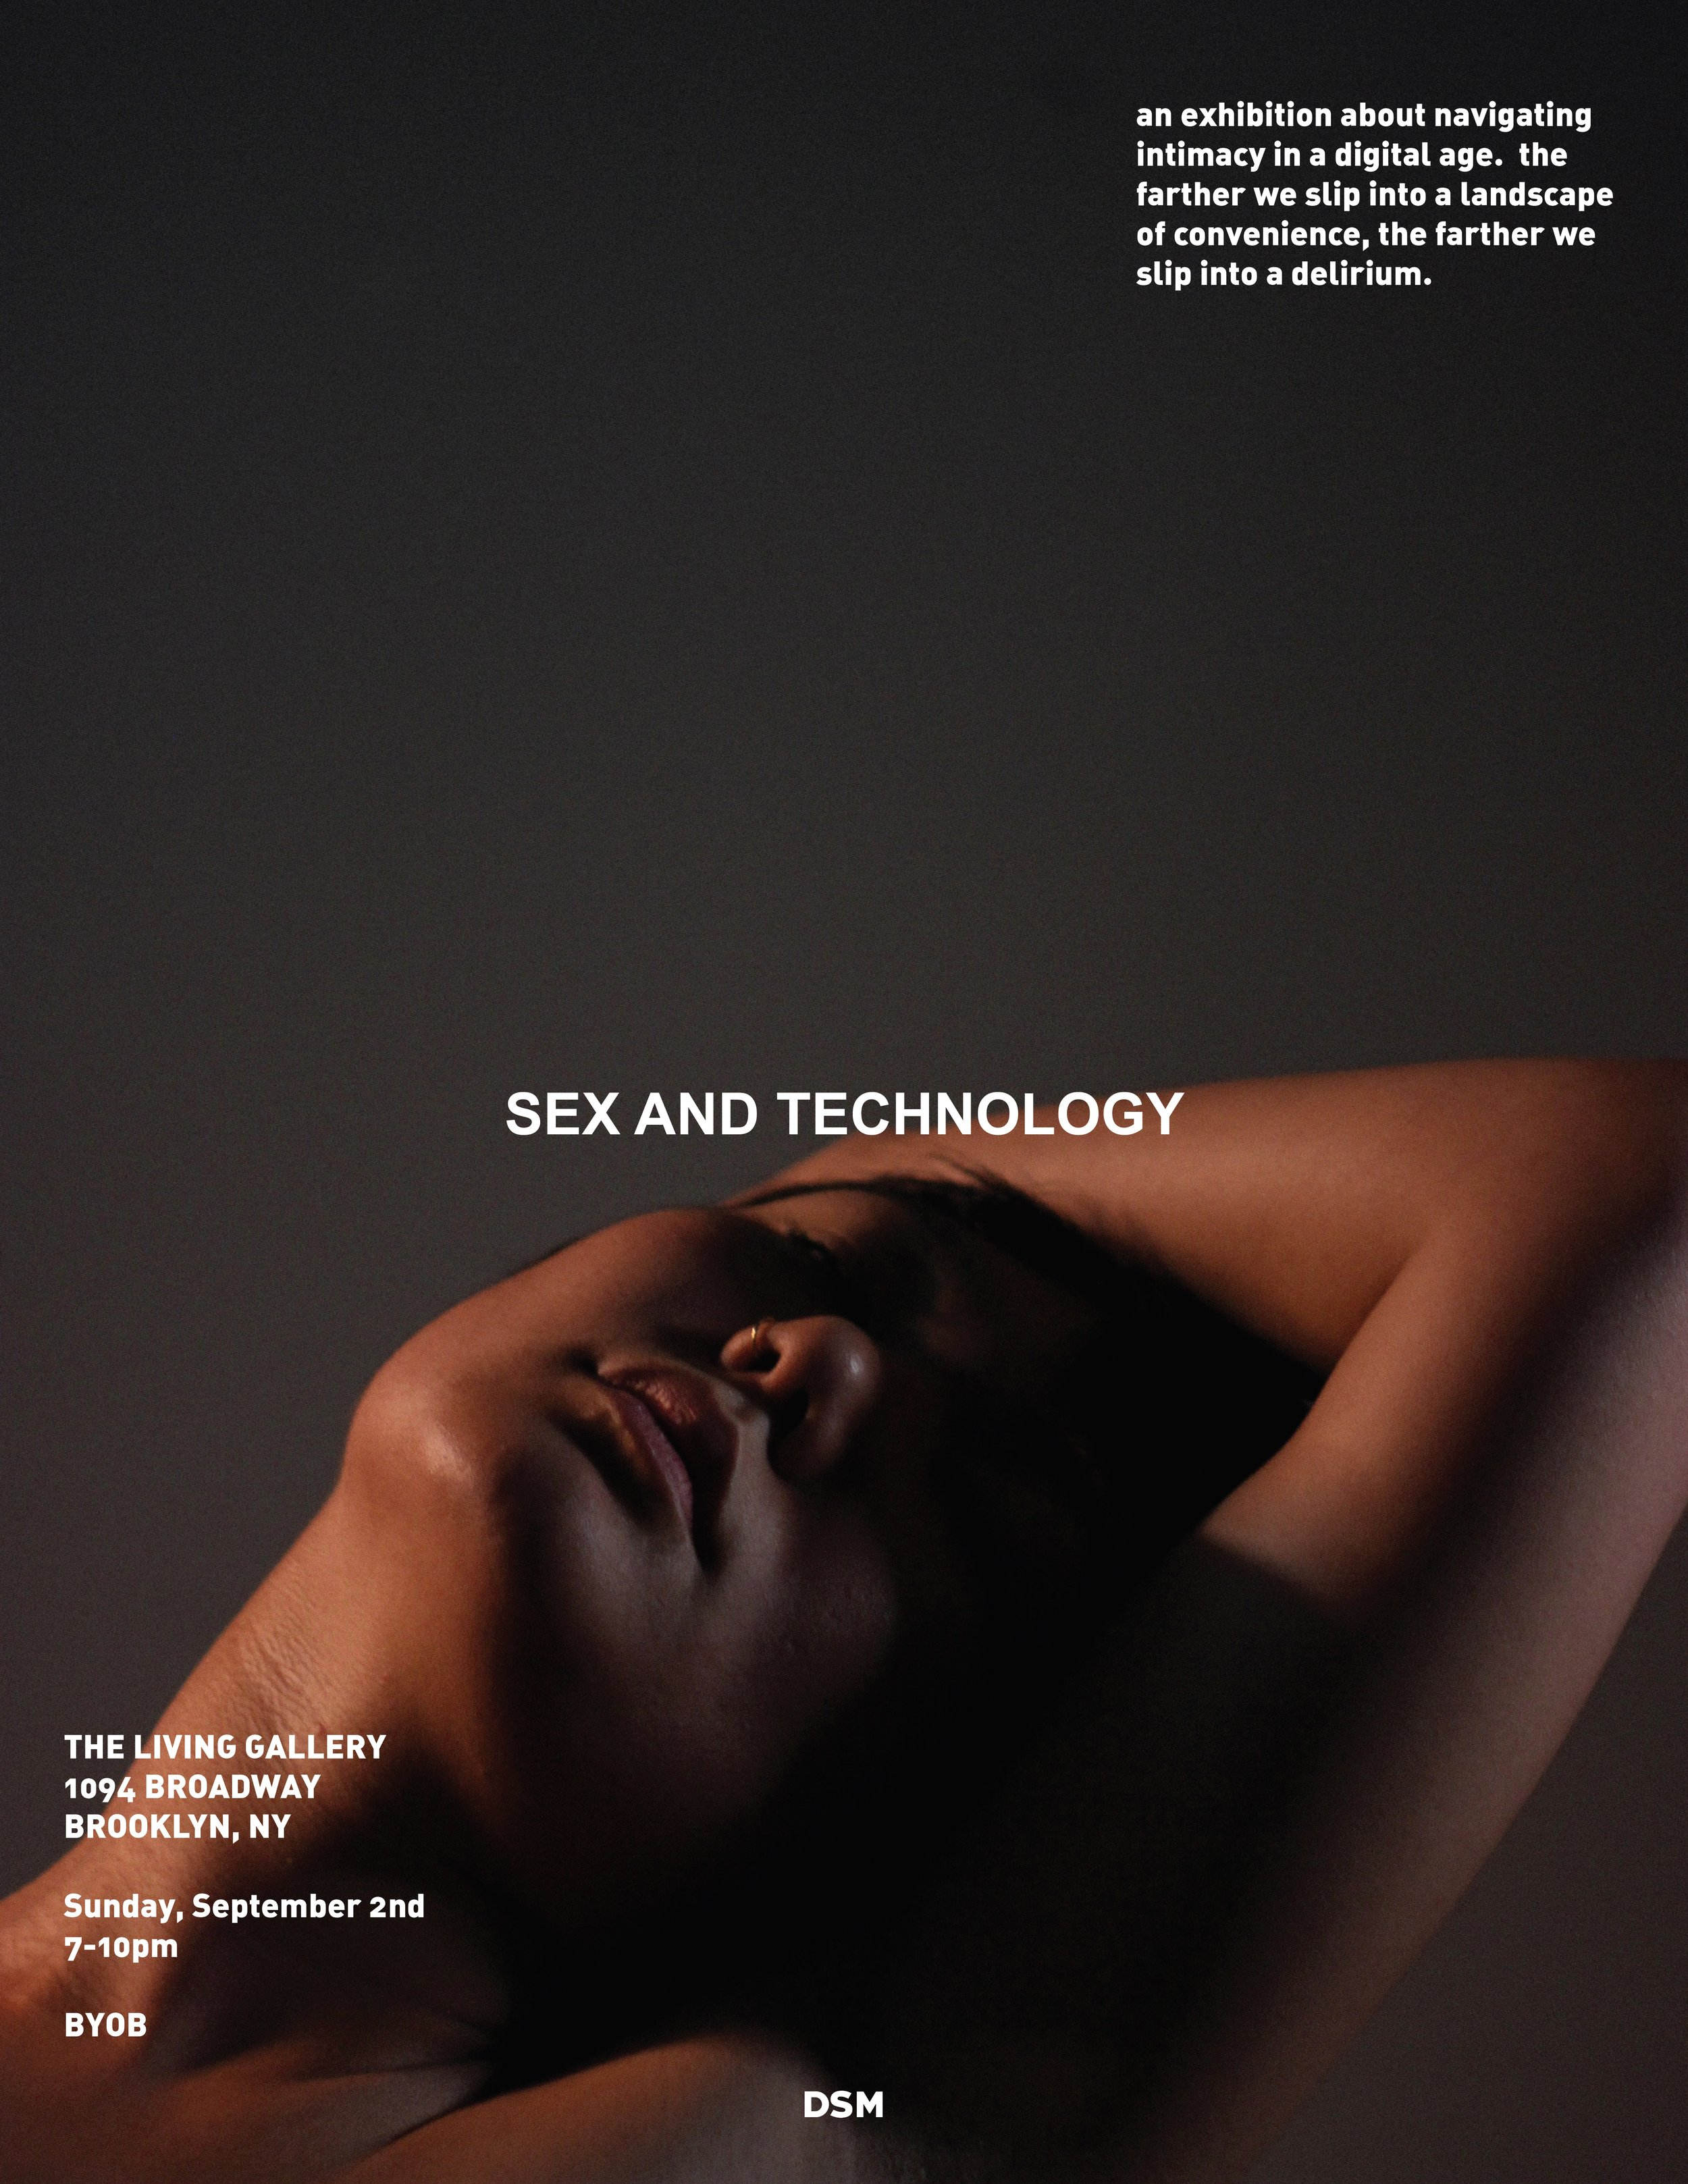 poster for dsmvisuals' sex and technology exhibition (2018)